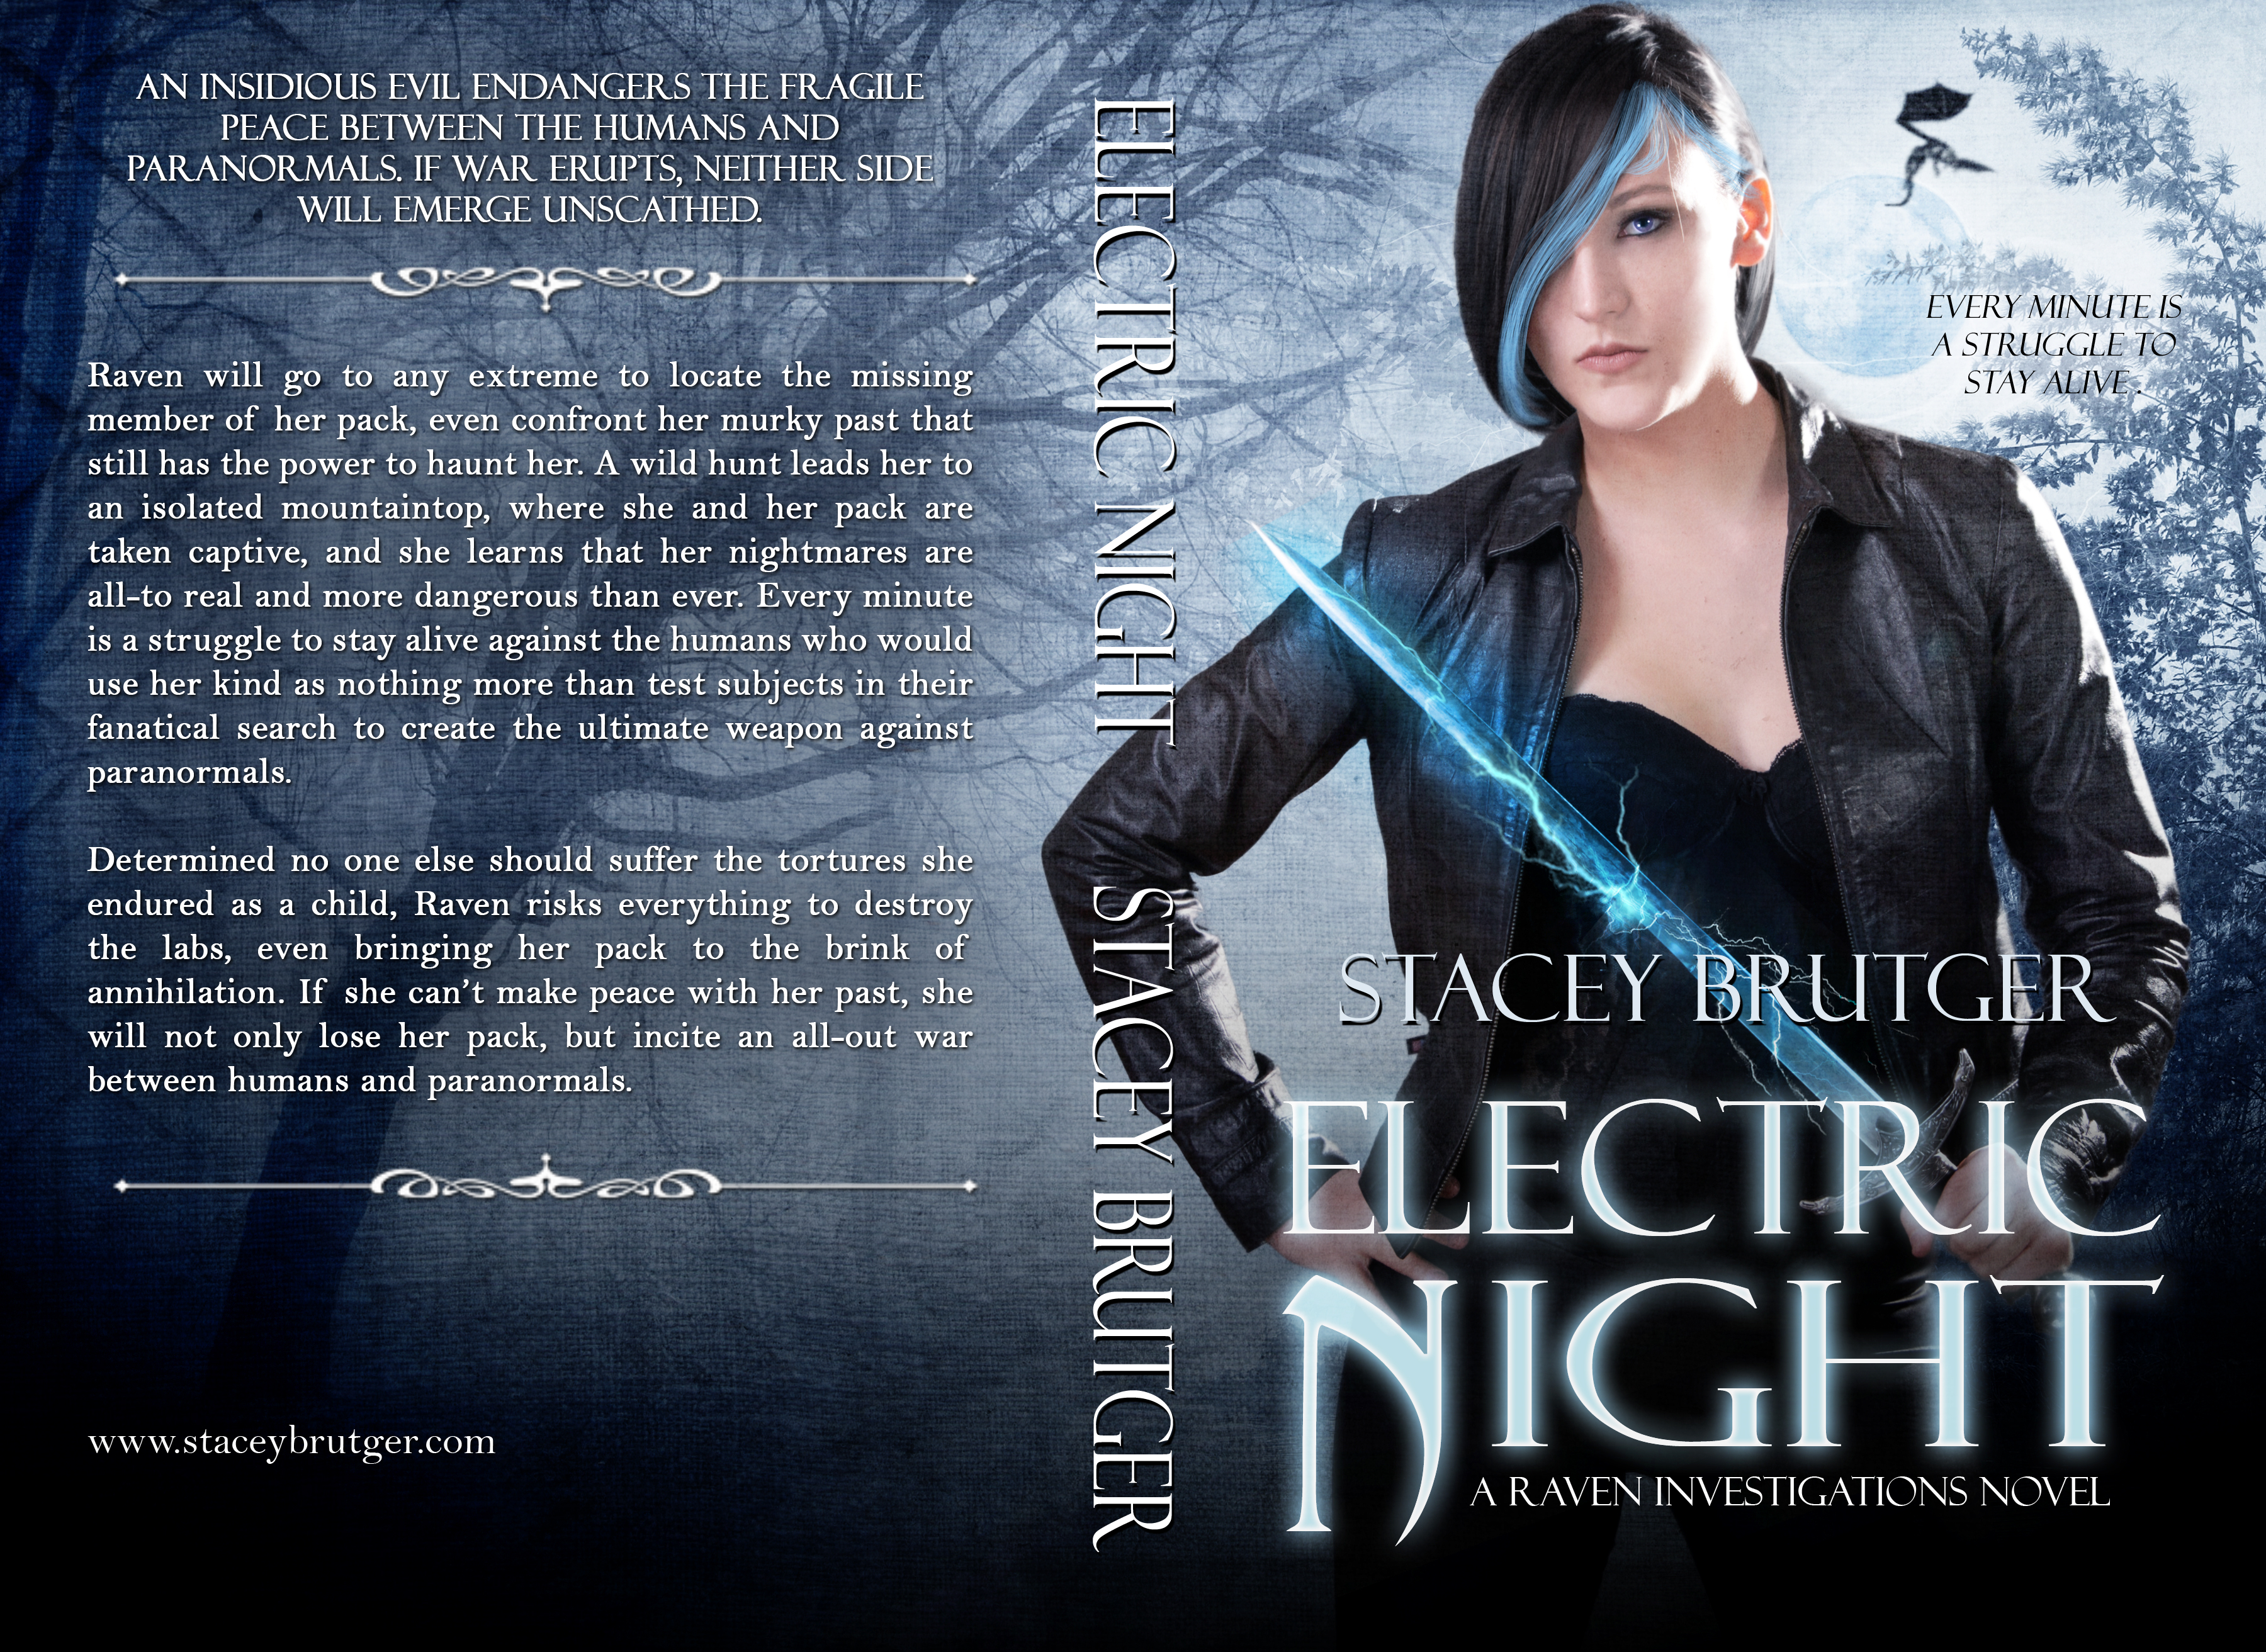 Electric Night Print Cover by Stacey Brutger